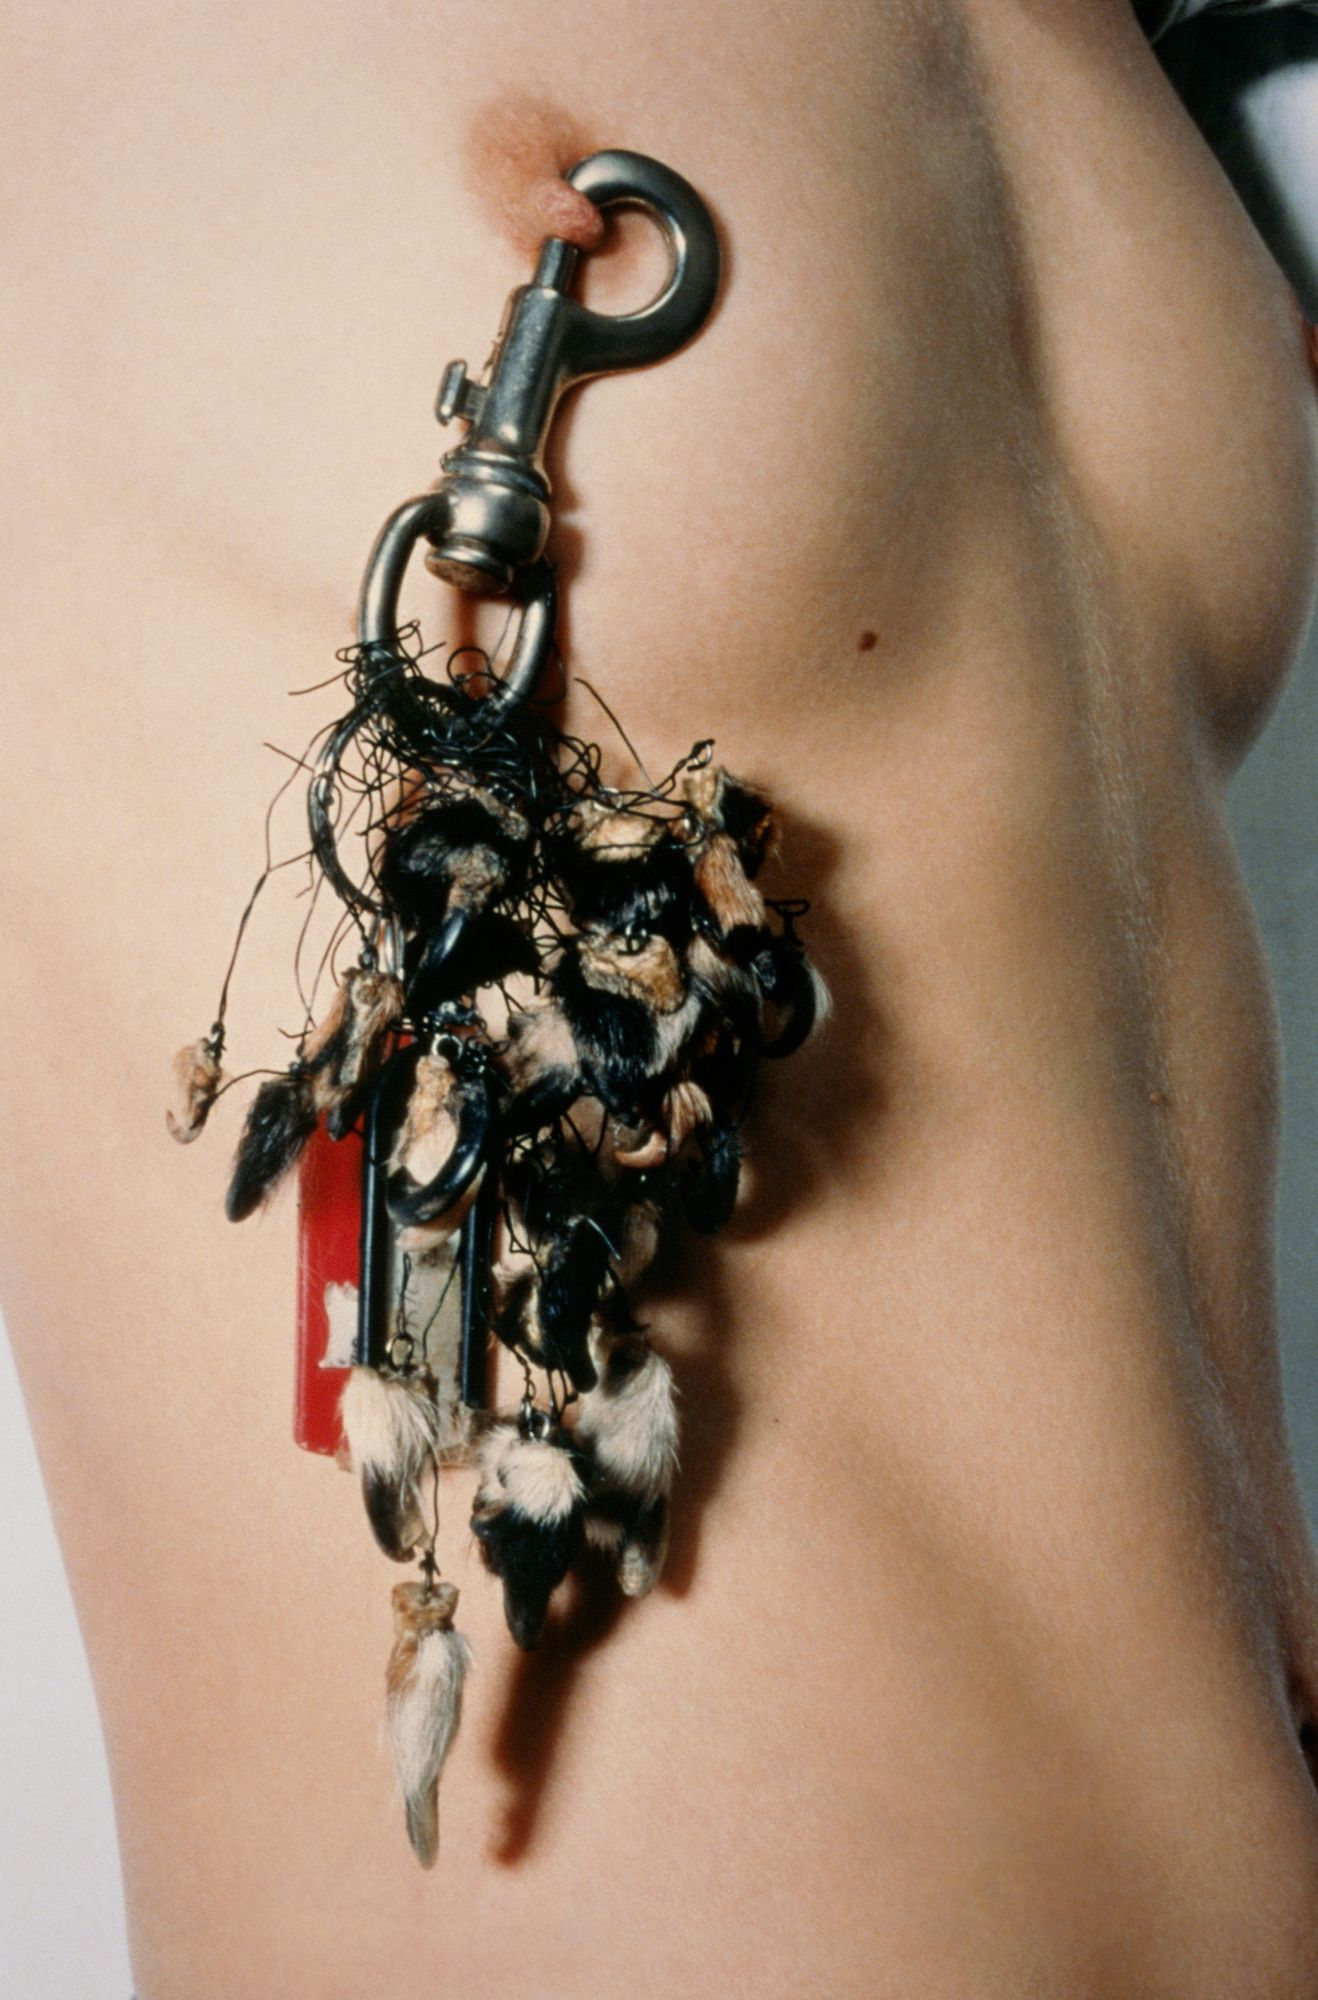 Lot 6 Sigalit Landau, Key Holder, 1996 – Estimate: 15,000 - 20,000 € Courtesy of the artist and Kamel Mennour, Paris / London